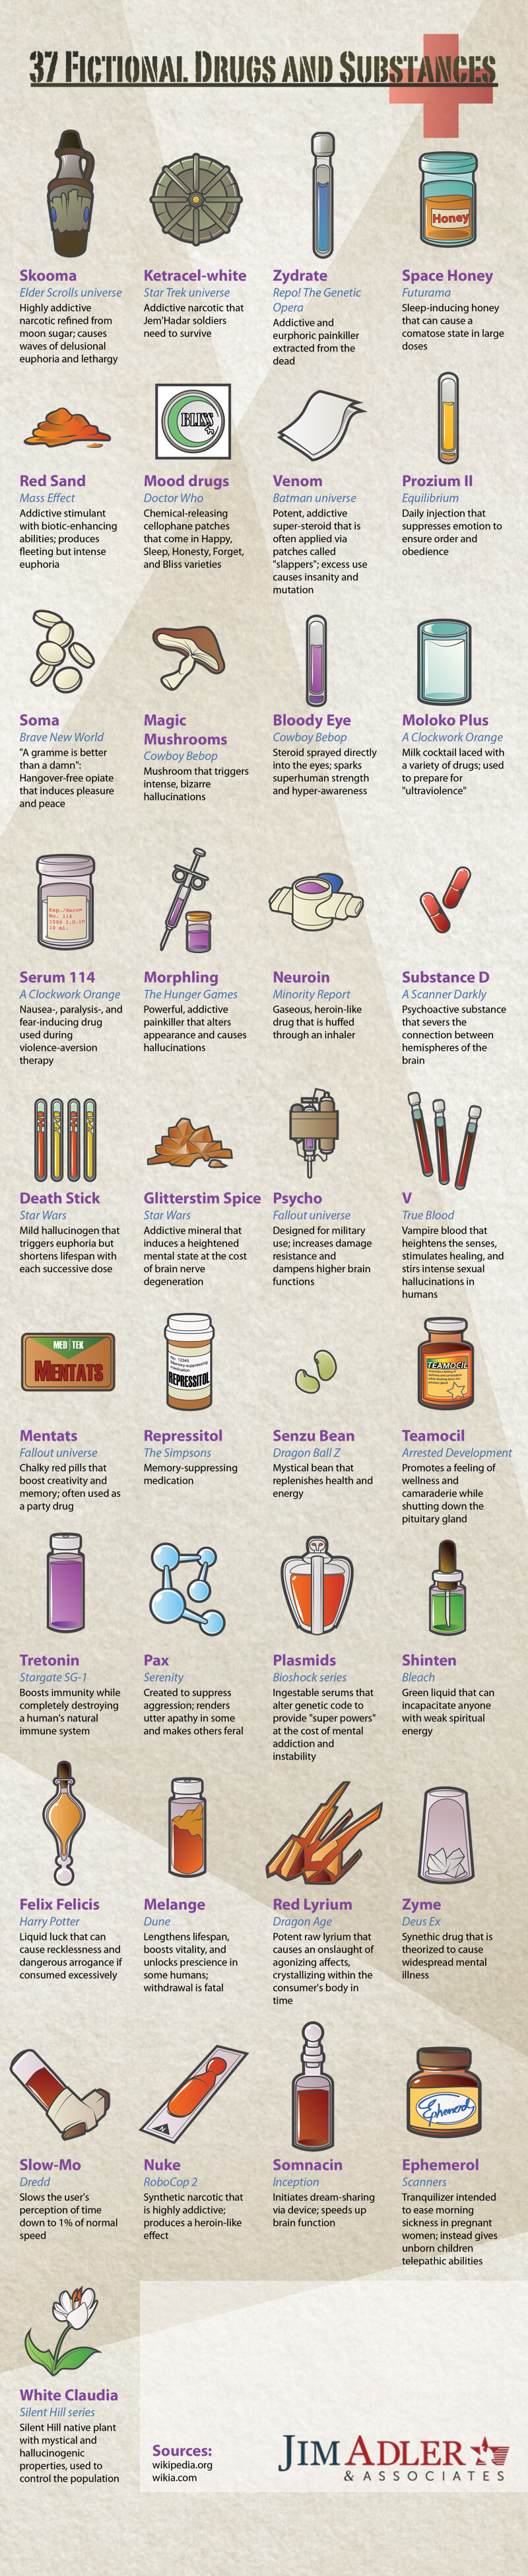 Drugs And Substances Used By Characters In The Fictional World